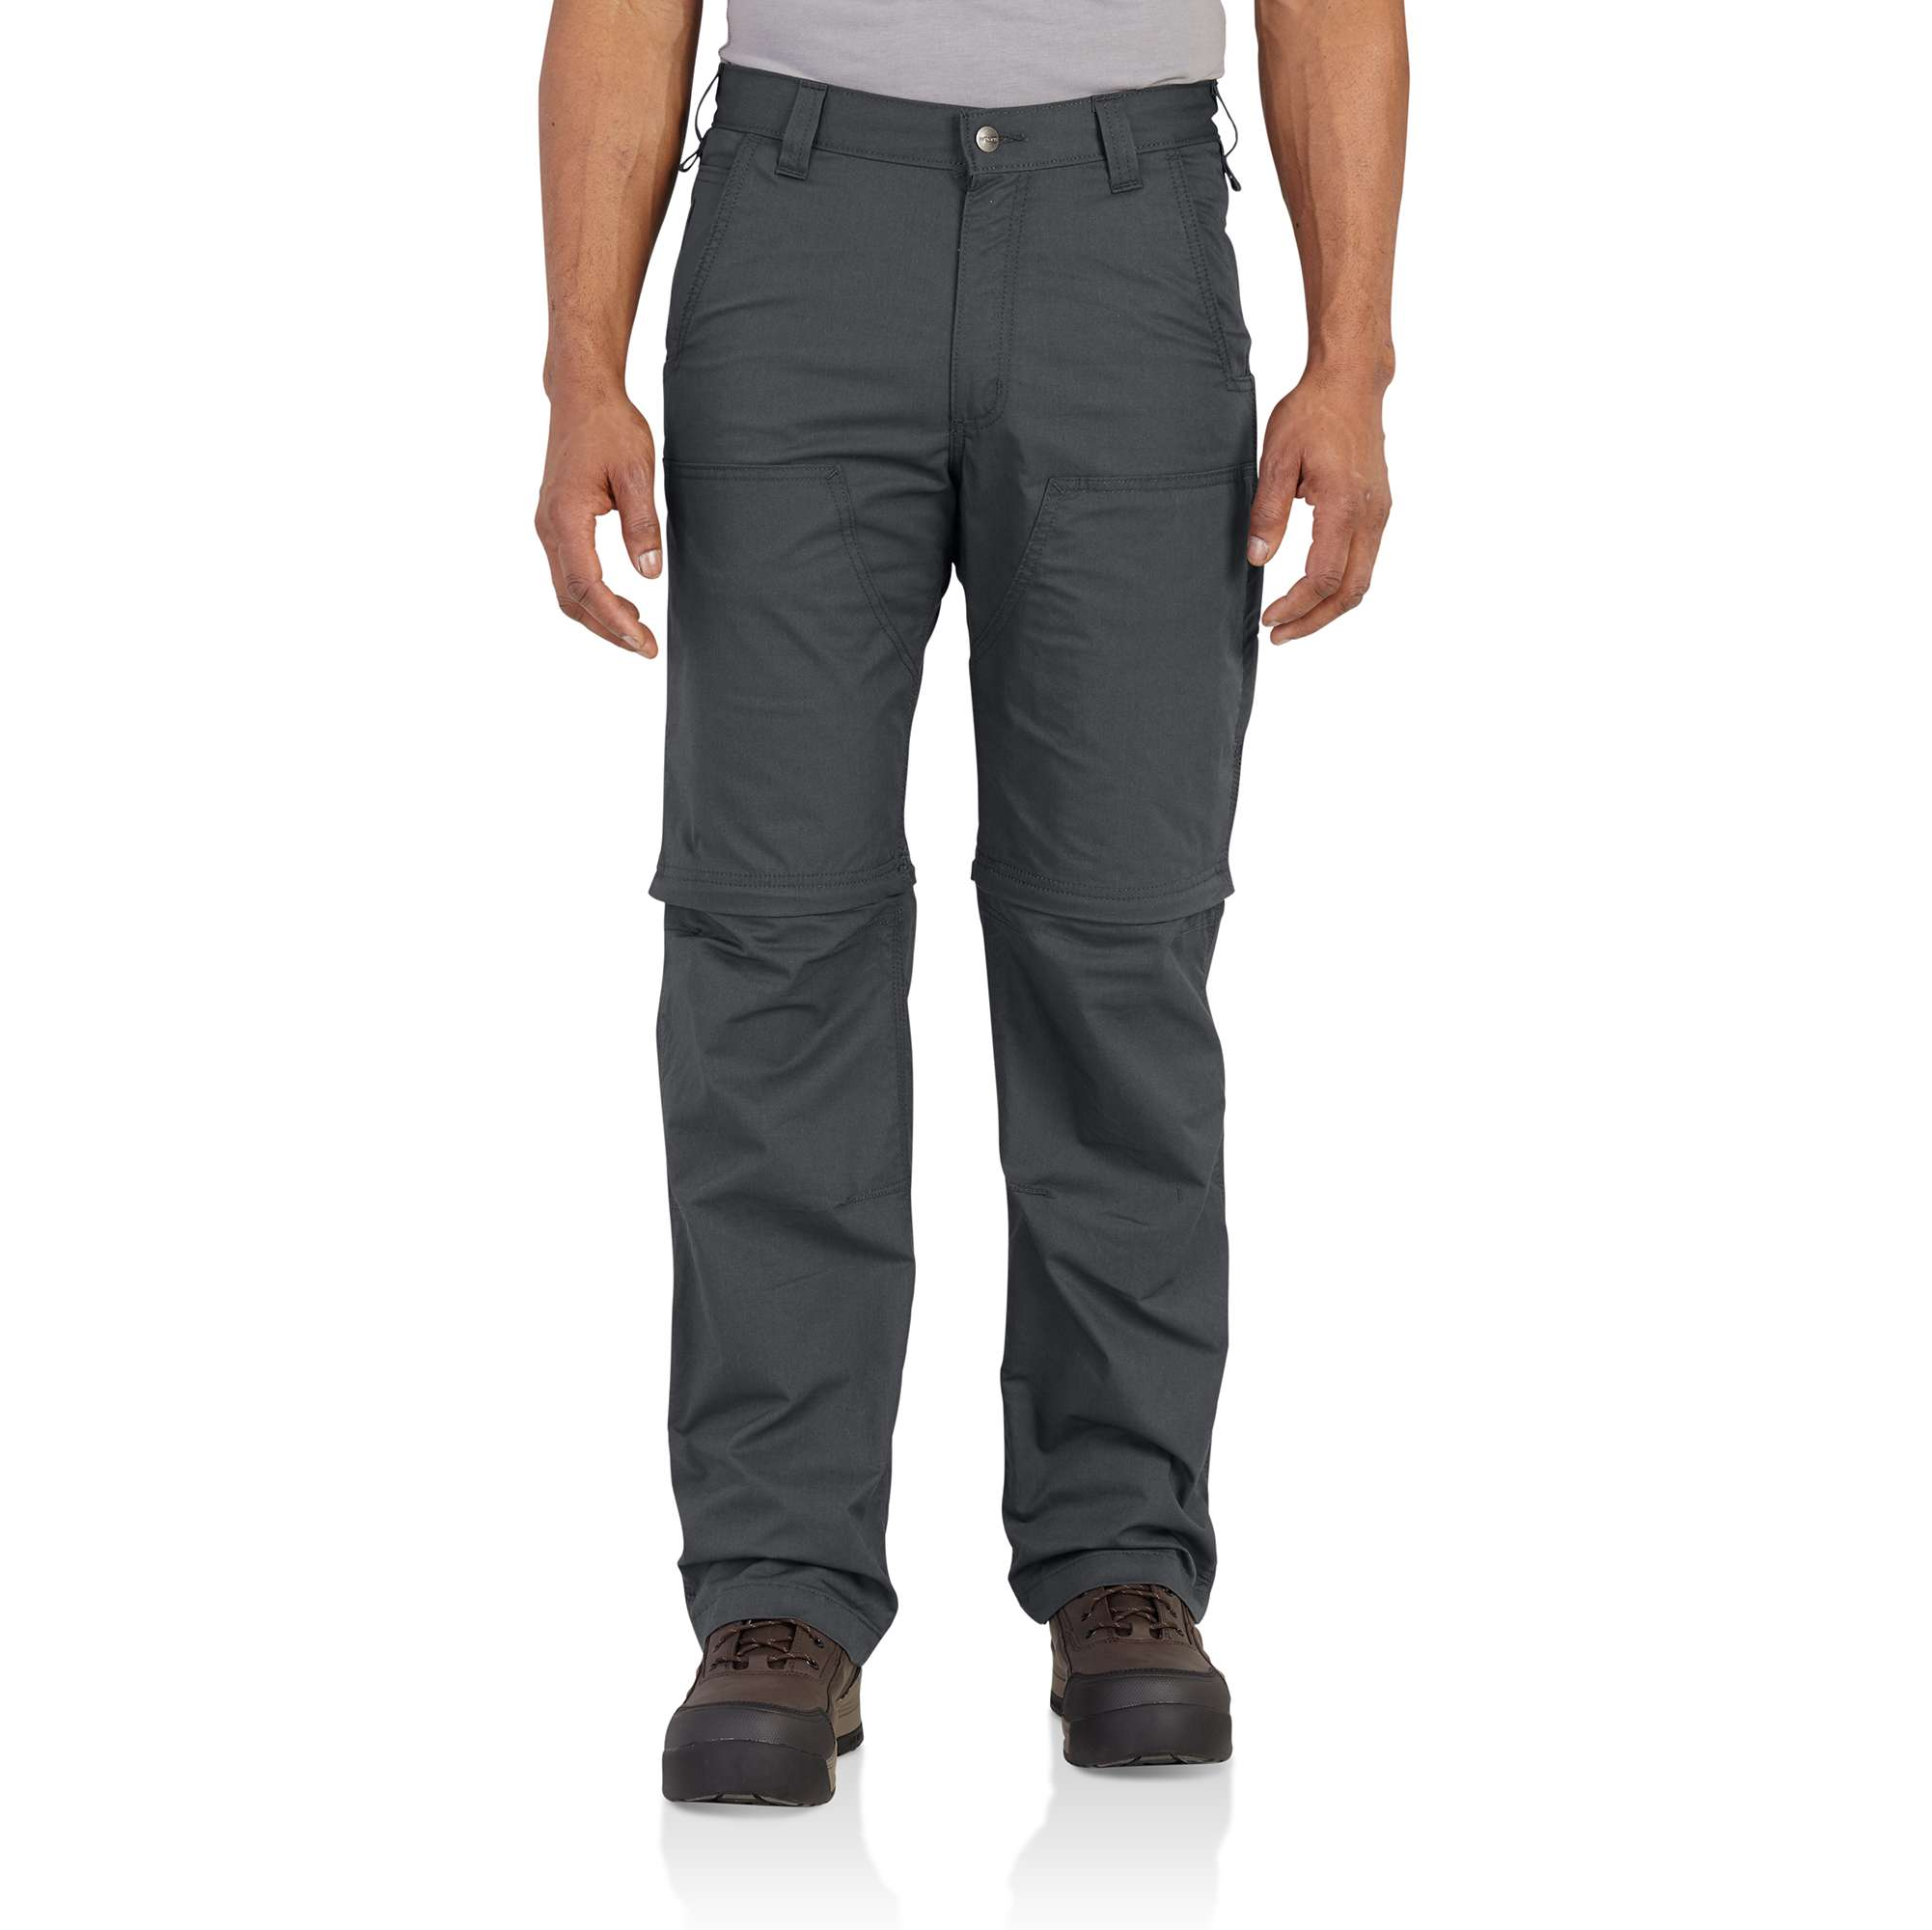 Carhartt Force Extremes Convertible Pant